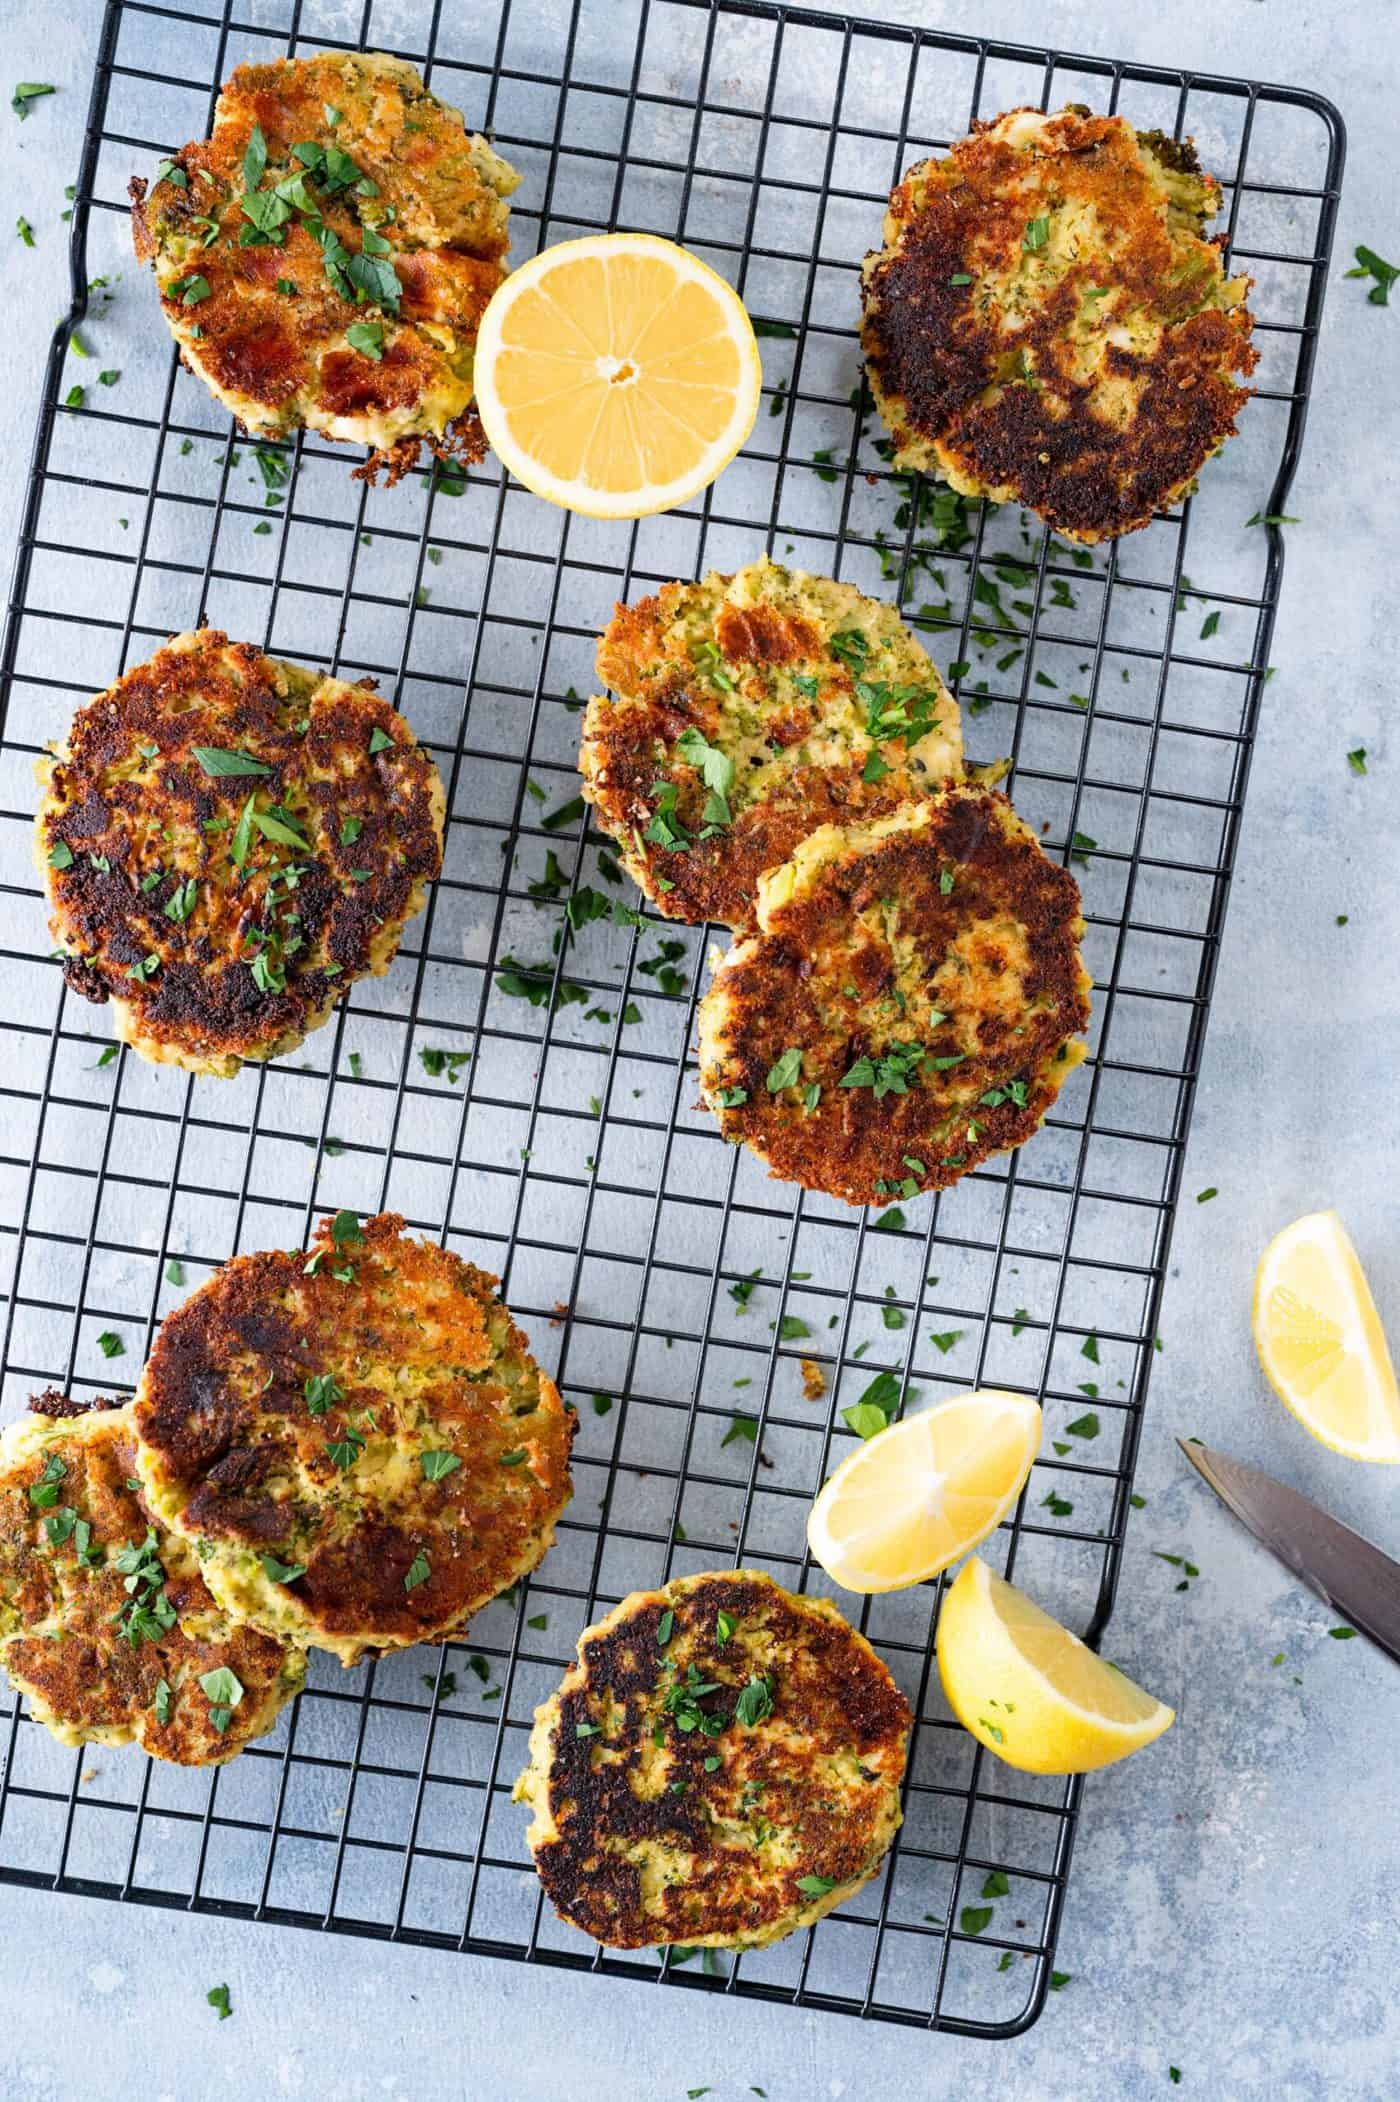 Gluten-Free Hummus Feta and Broccoli Fritters (via thepigandquill.com) #gameday #snack #vegetarian #lunchbox